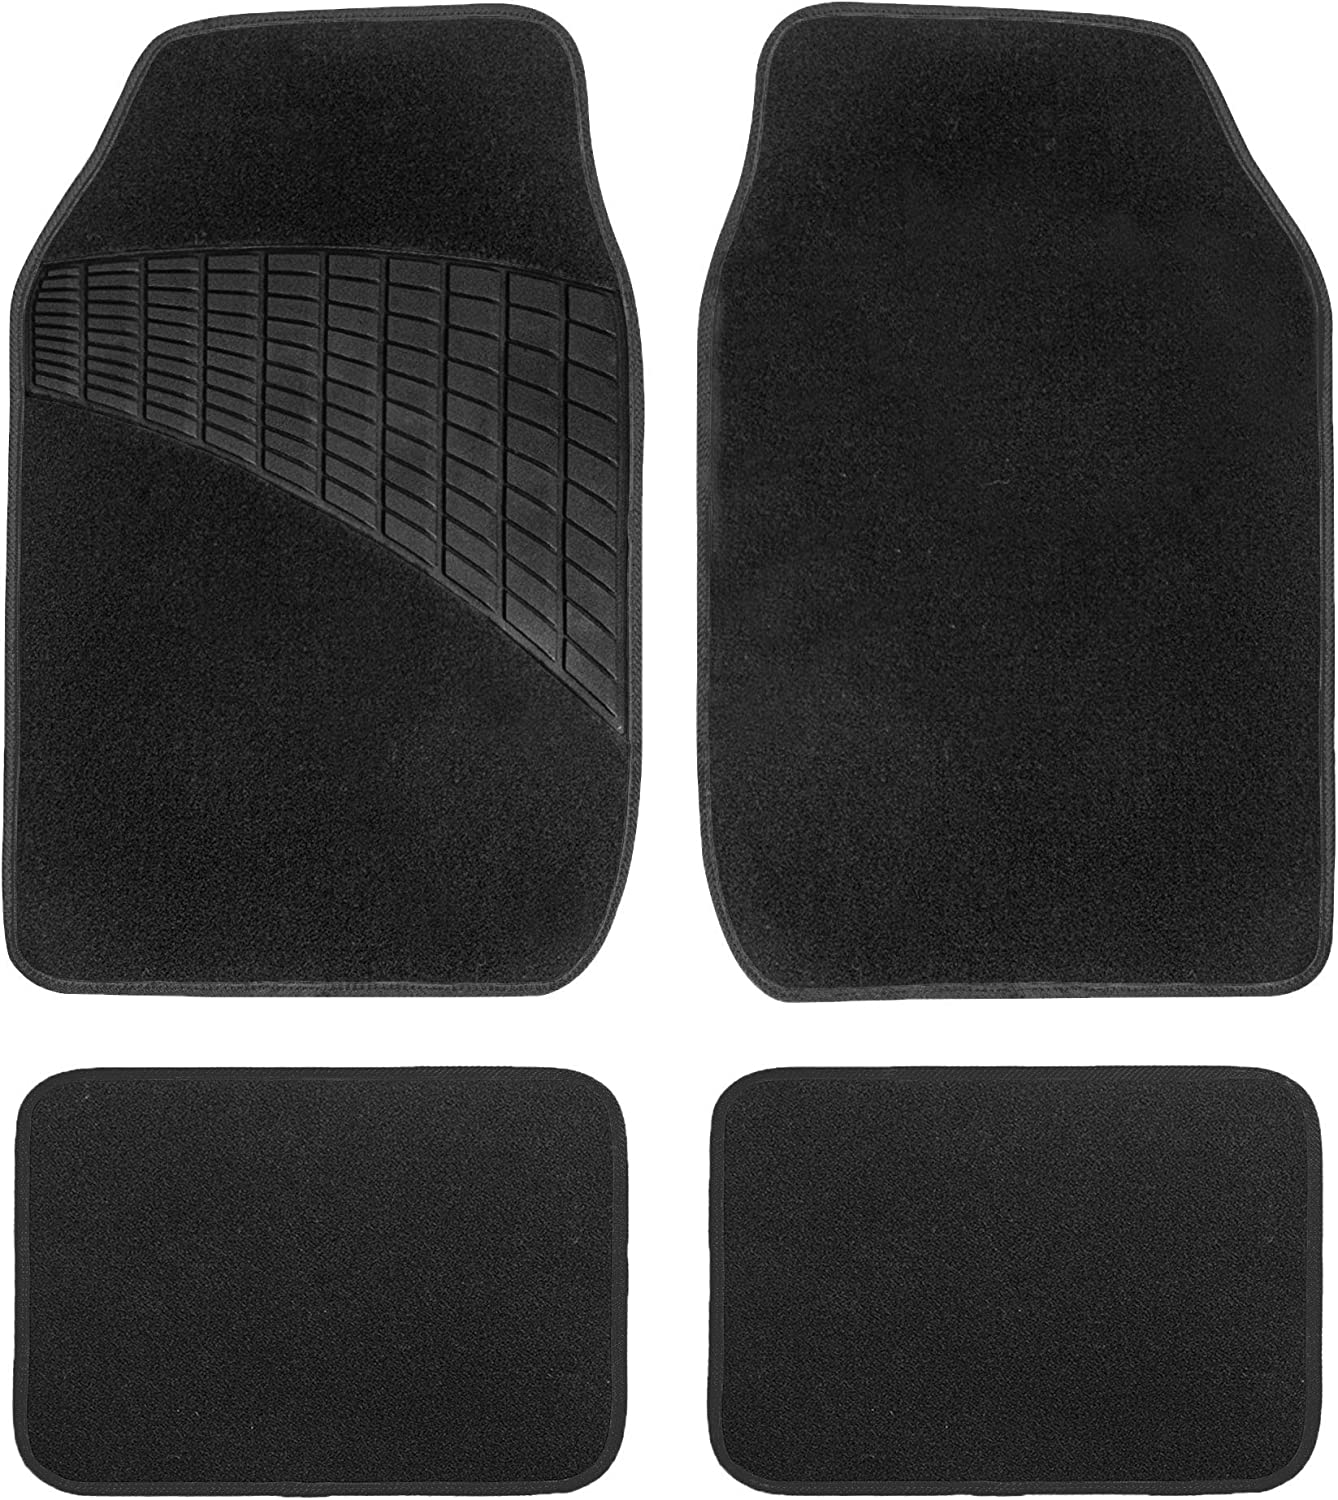 Color-Trimmed Liners Non-Slip Car Floor Mats with Rubber Heel Pad Full Set